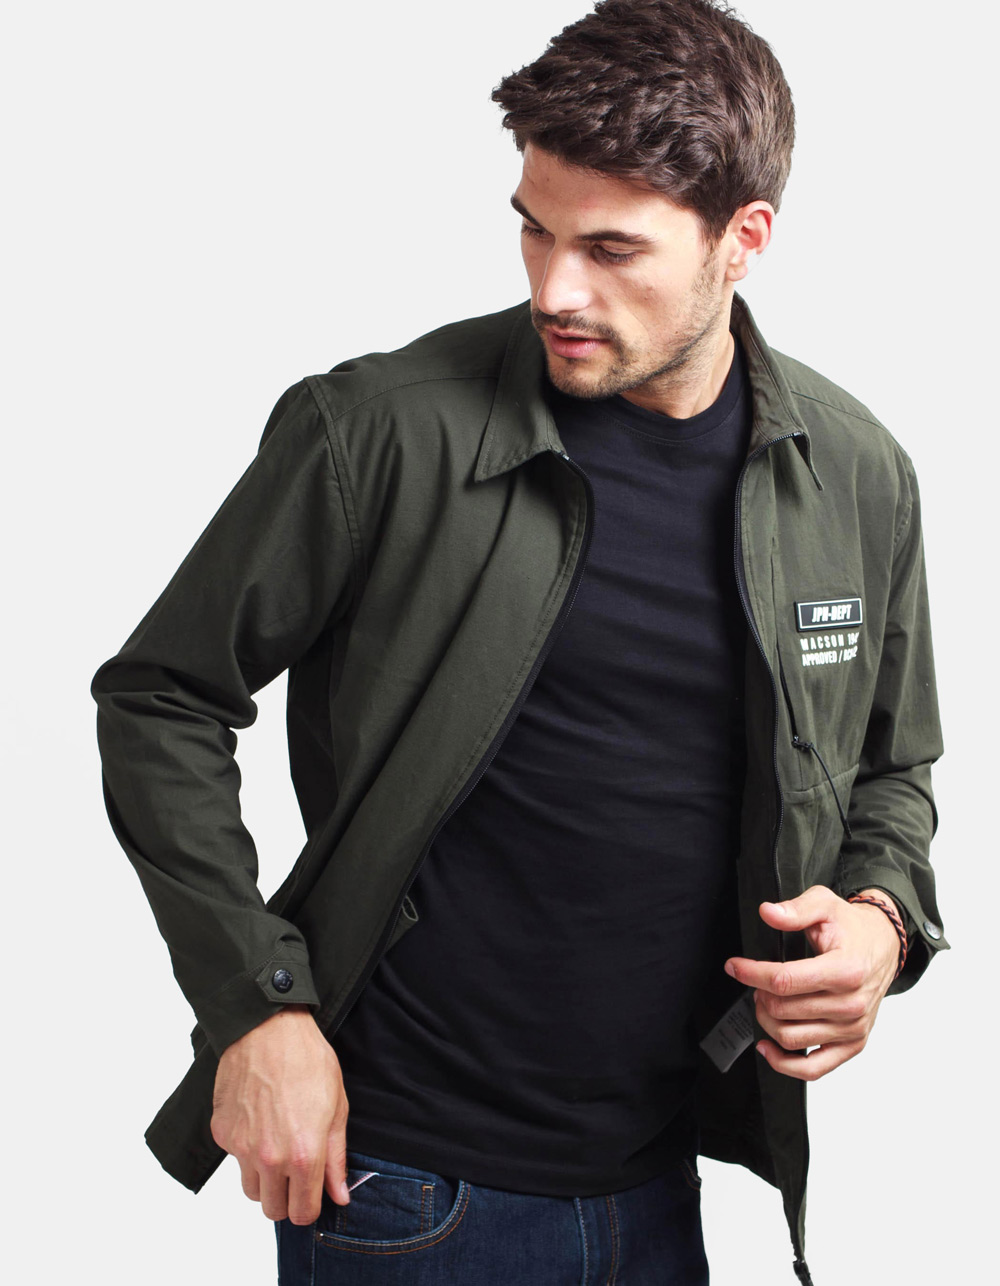 Militar green overshirt